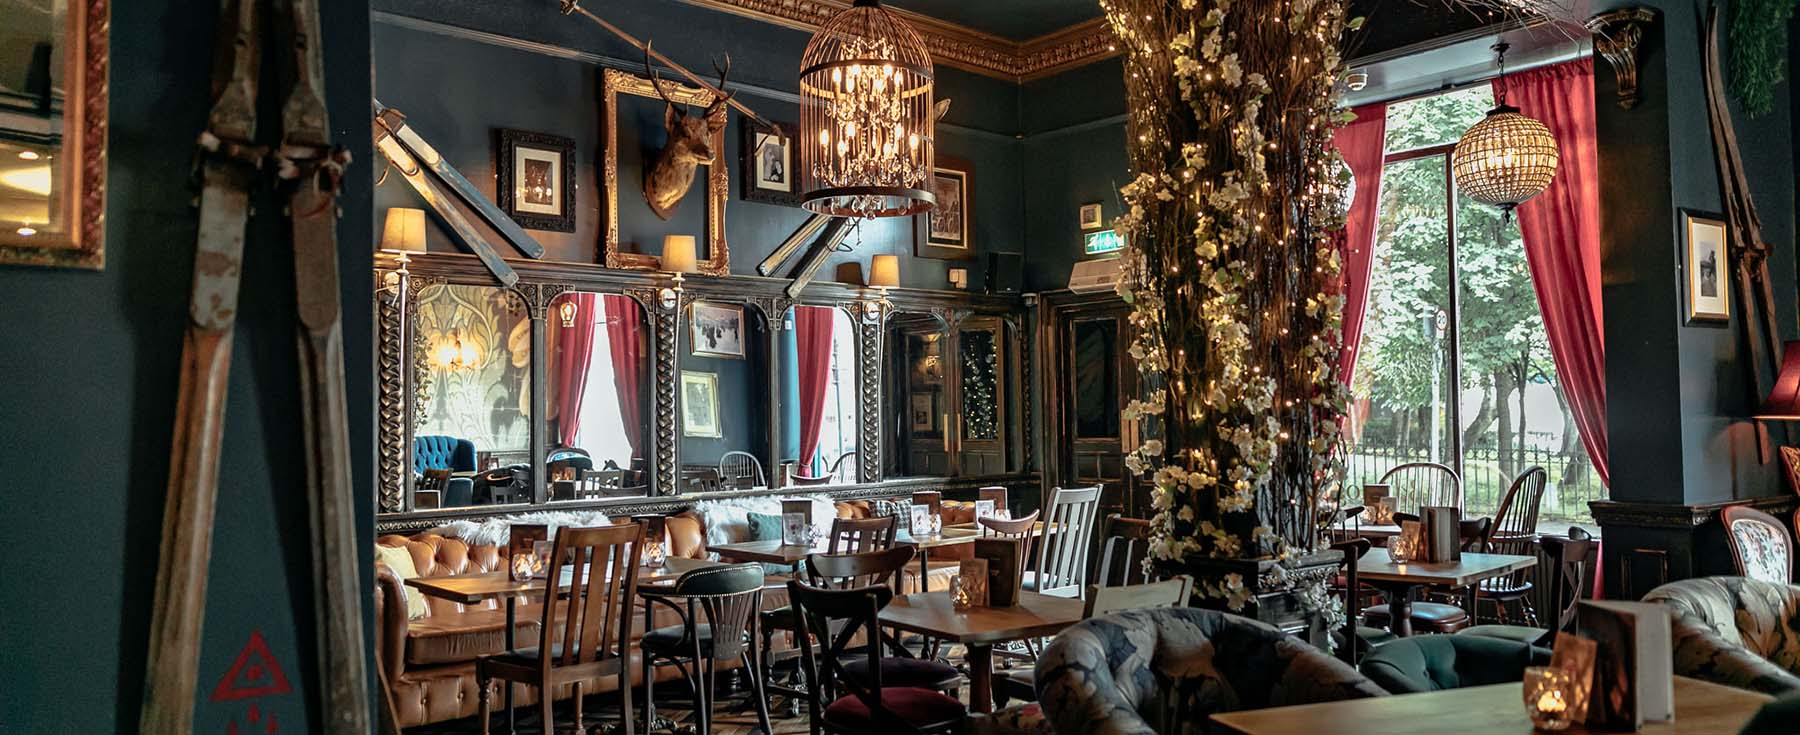 Weather-themed Barologist bar, Edinburgh with contorted willow, artificial flowers and lights create mood and atmosphere